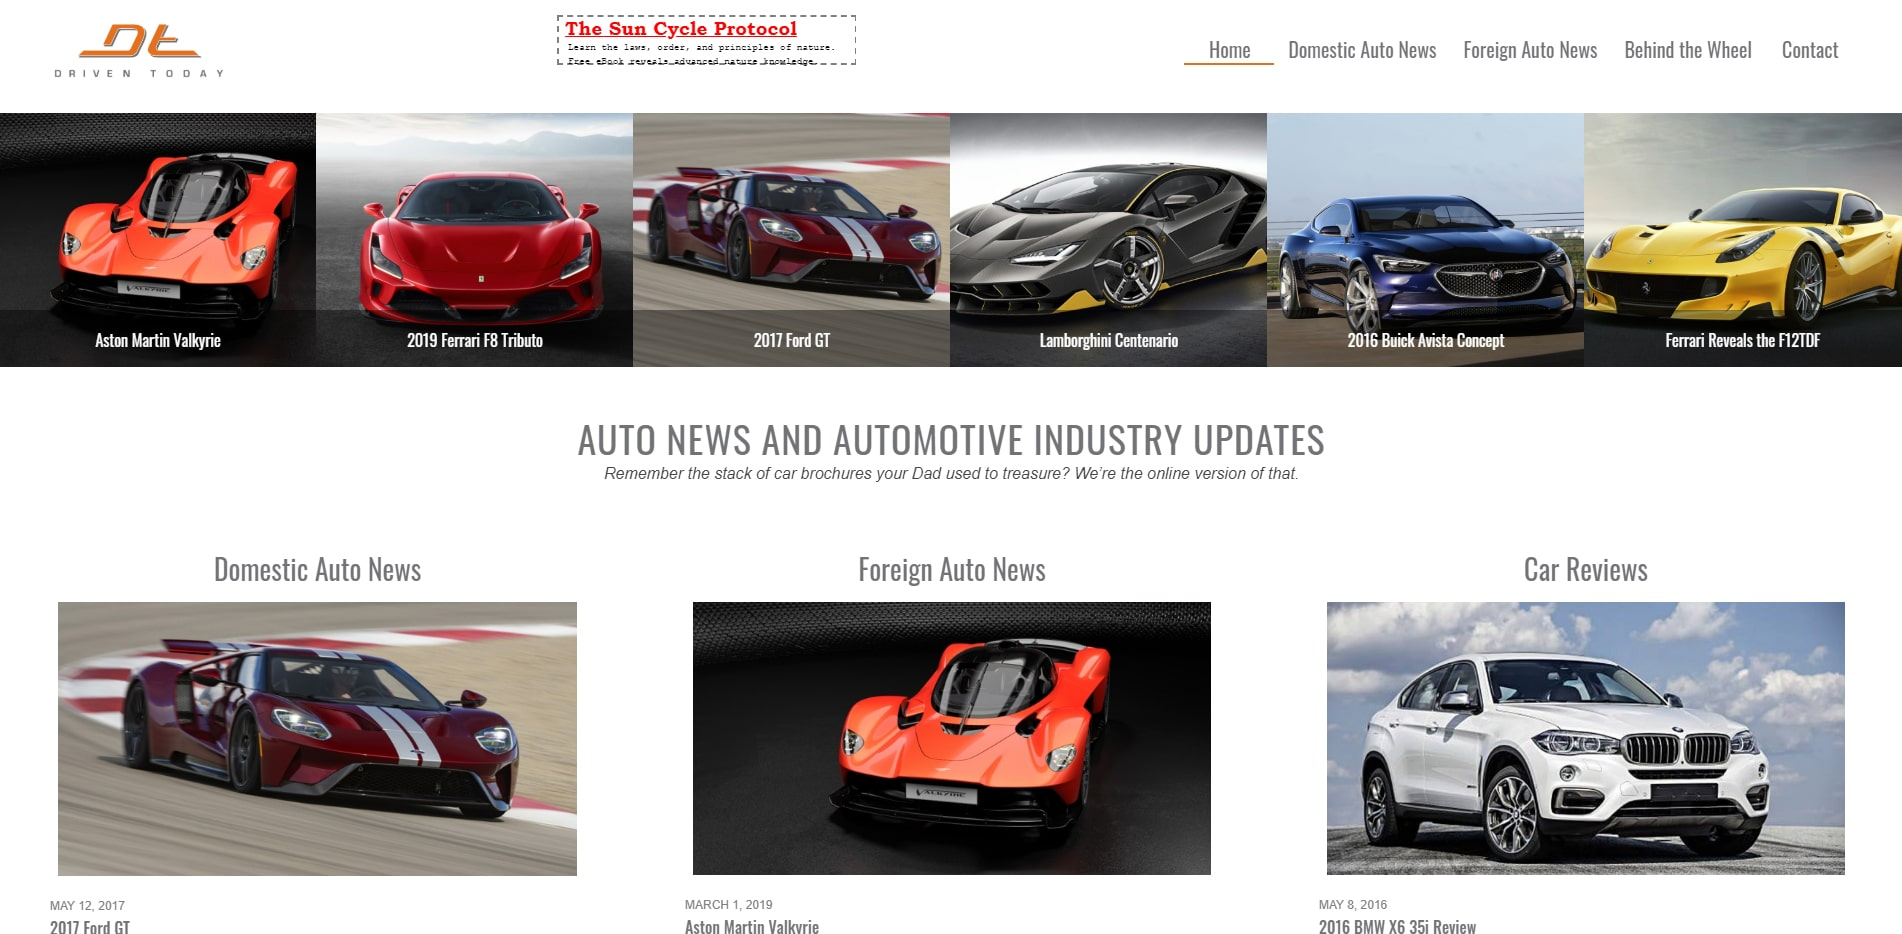 automotive industry news and updates